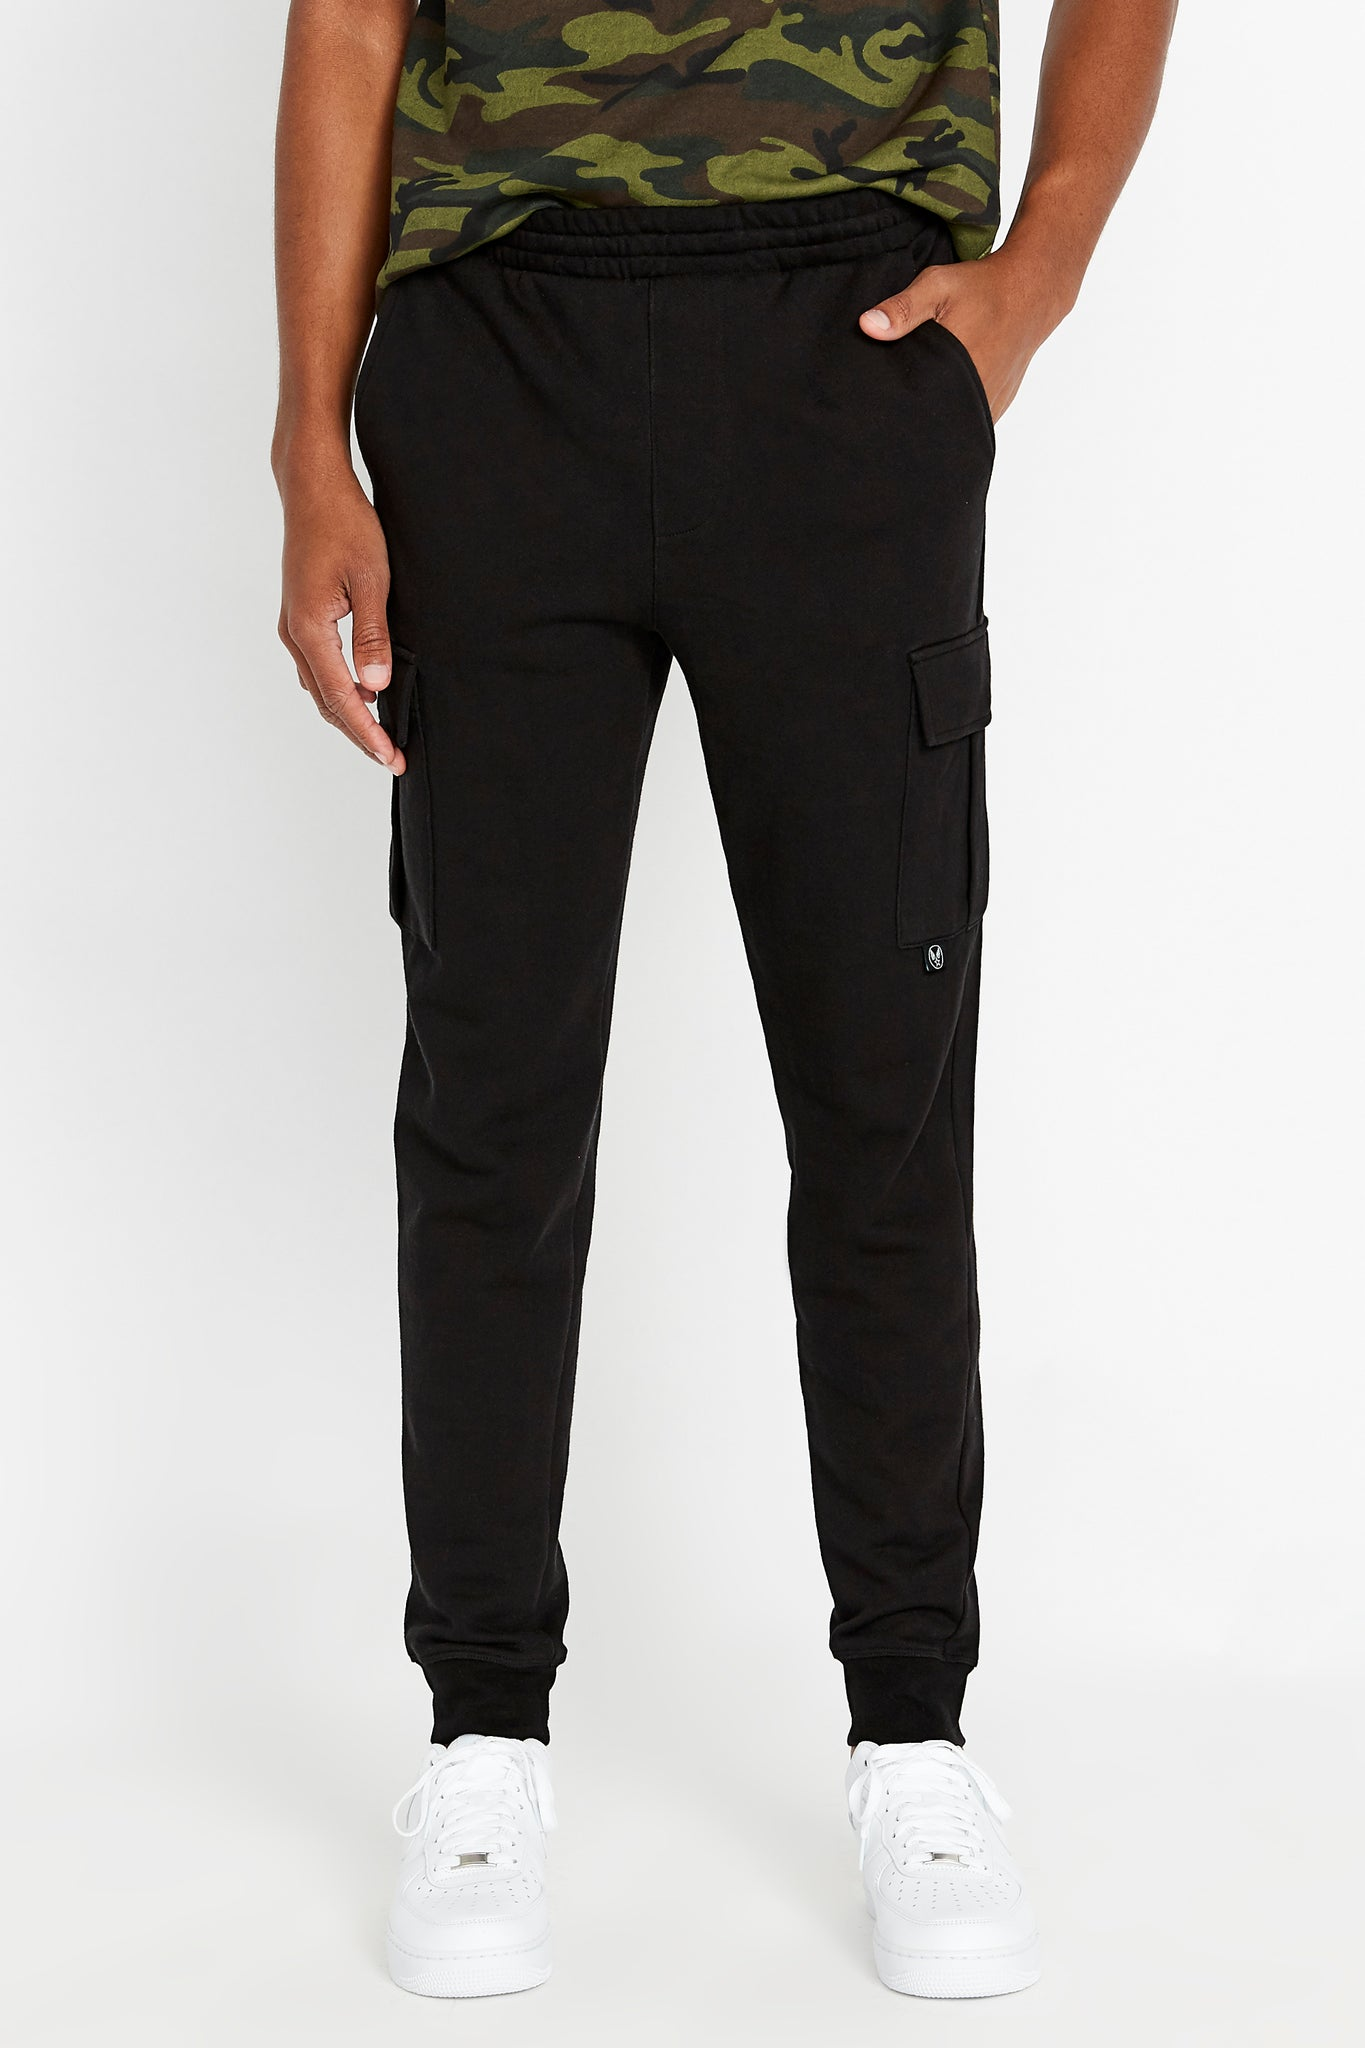 Men's drawstring pant with cargo pockets.  Elastic band closing at hem